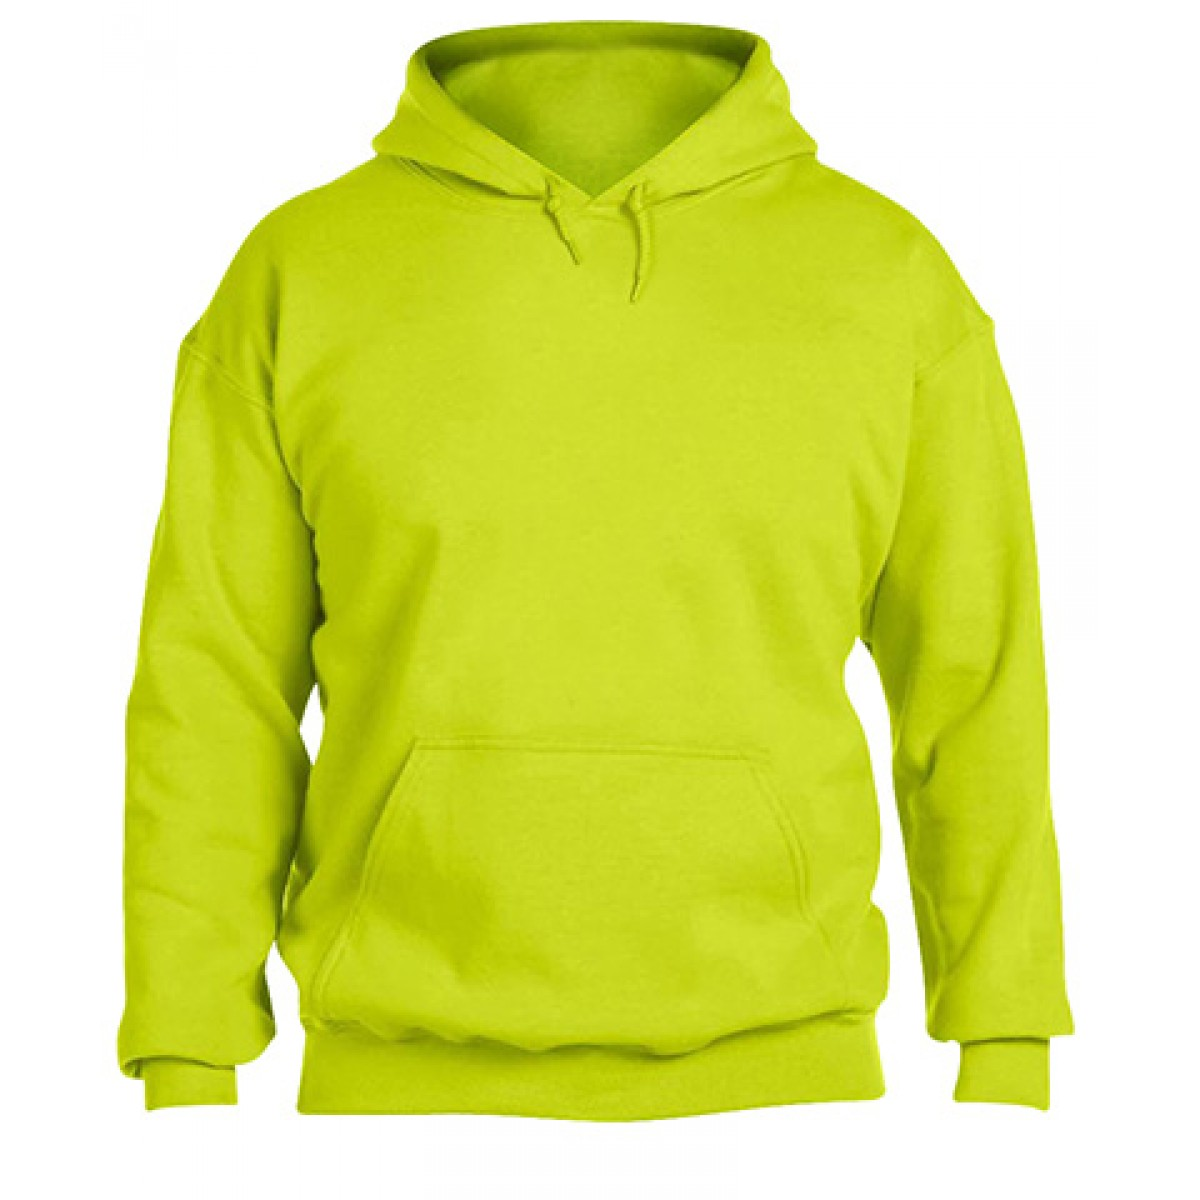 Hooded Sweatshirt 50/50 Heavy Blend-Safety Green-YM